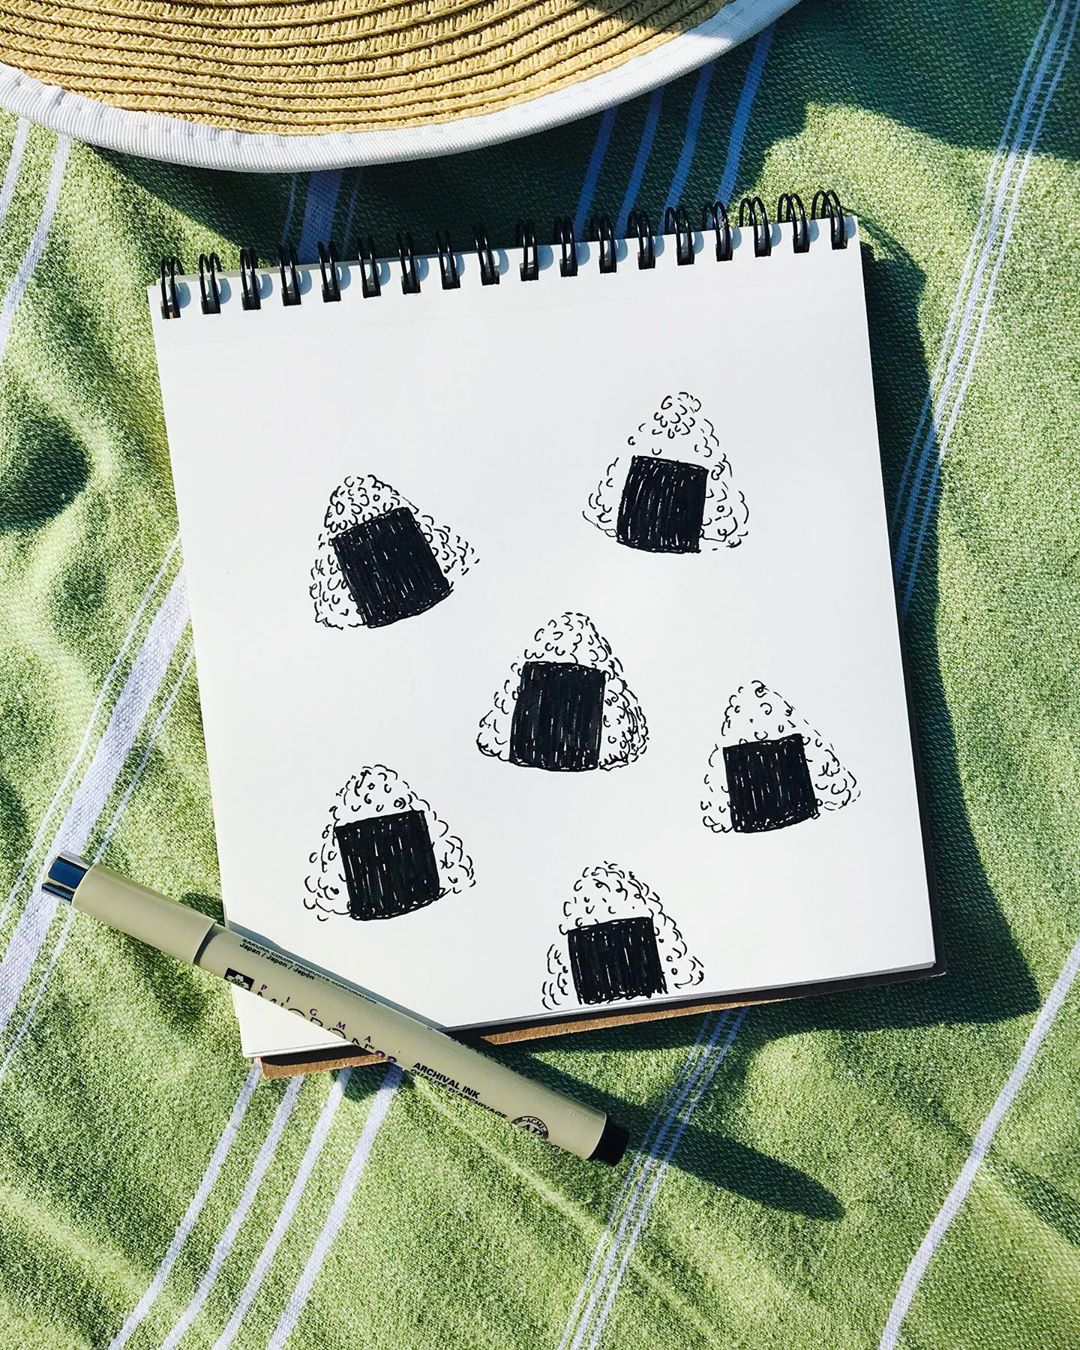 Onigiri pattern pen drawing on the beach. Day 73 #100daysoffoodillustration…